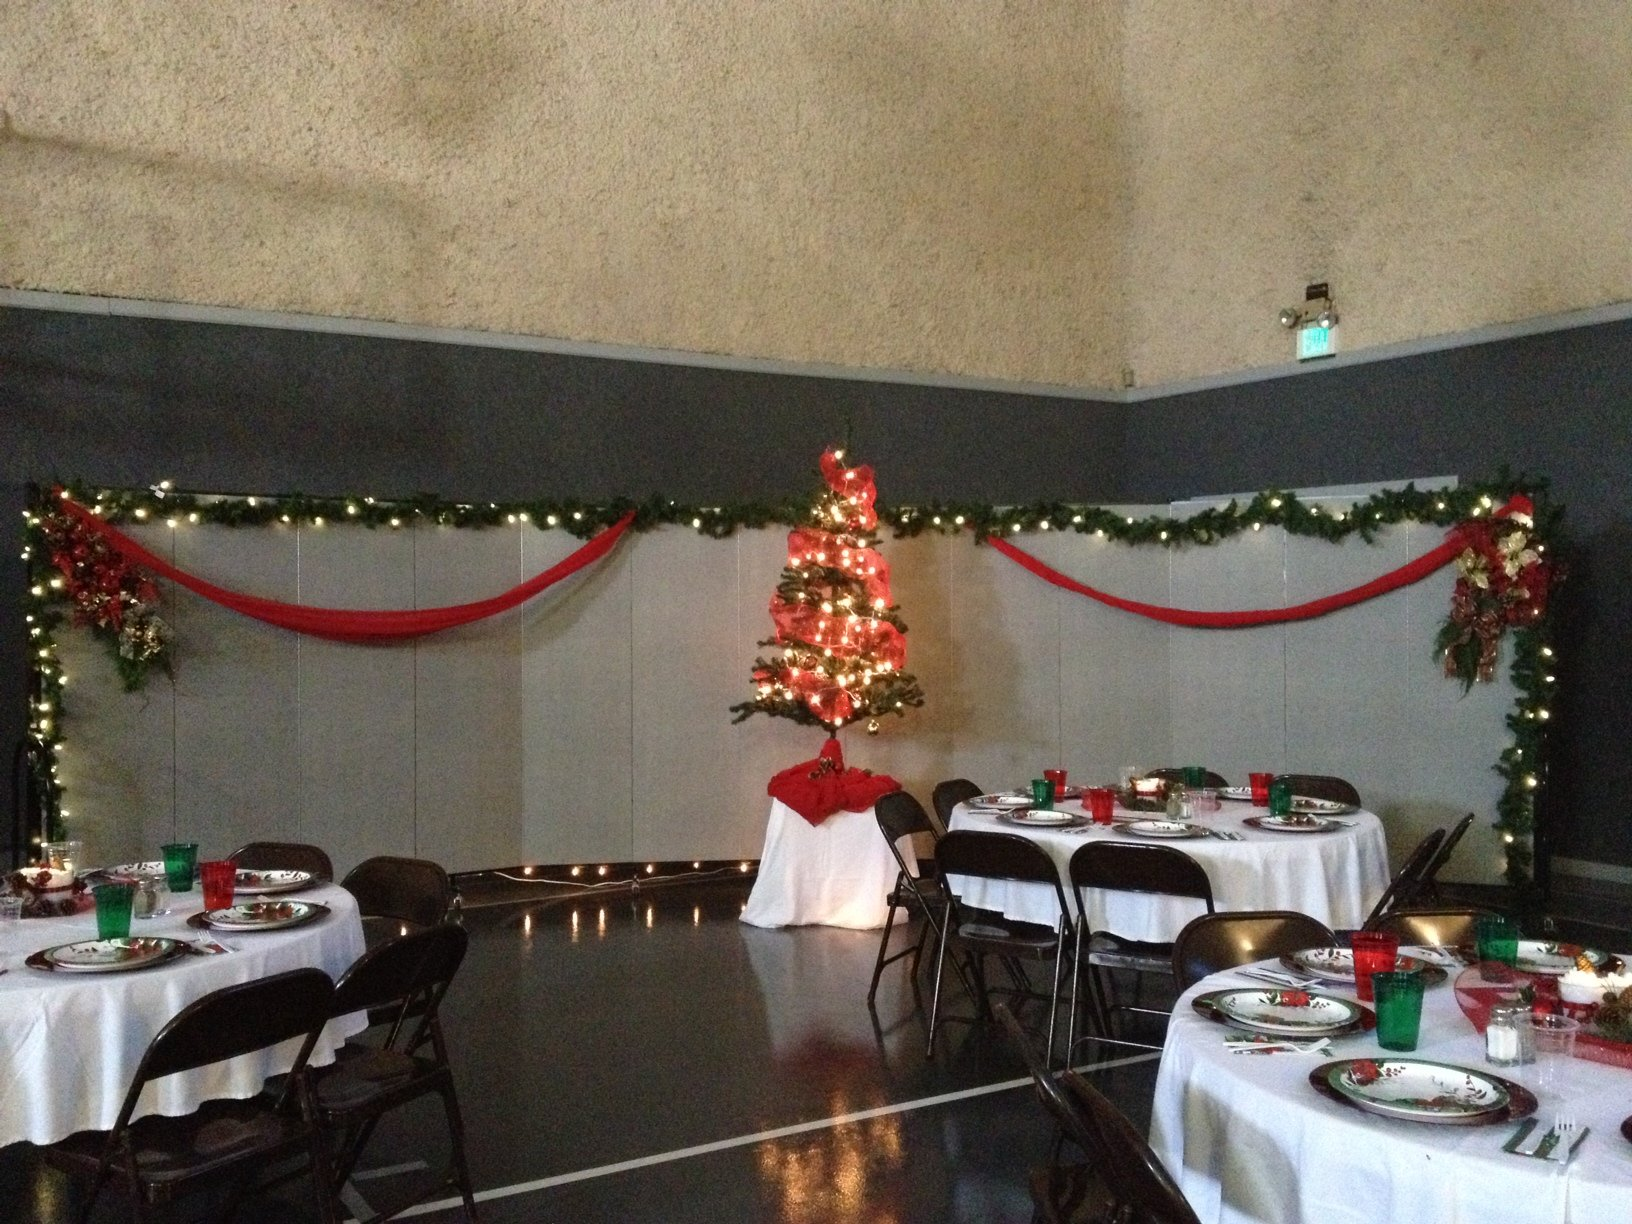 Decorated church gym for a women's Christmas banquet